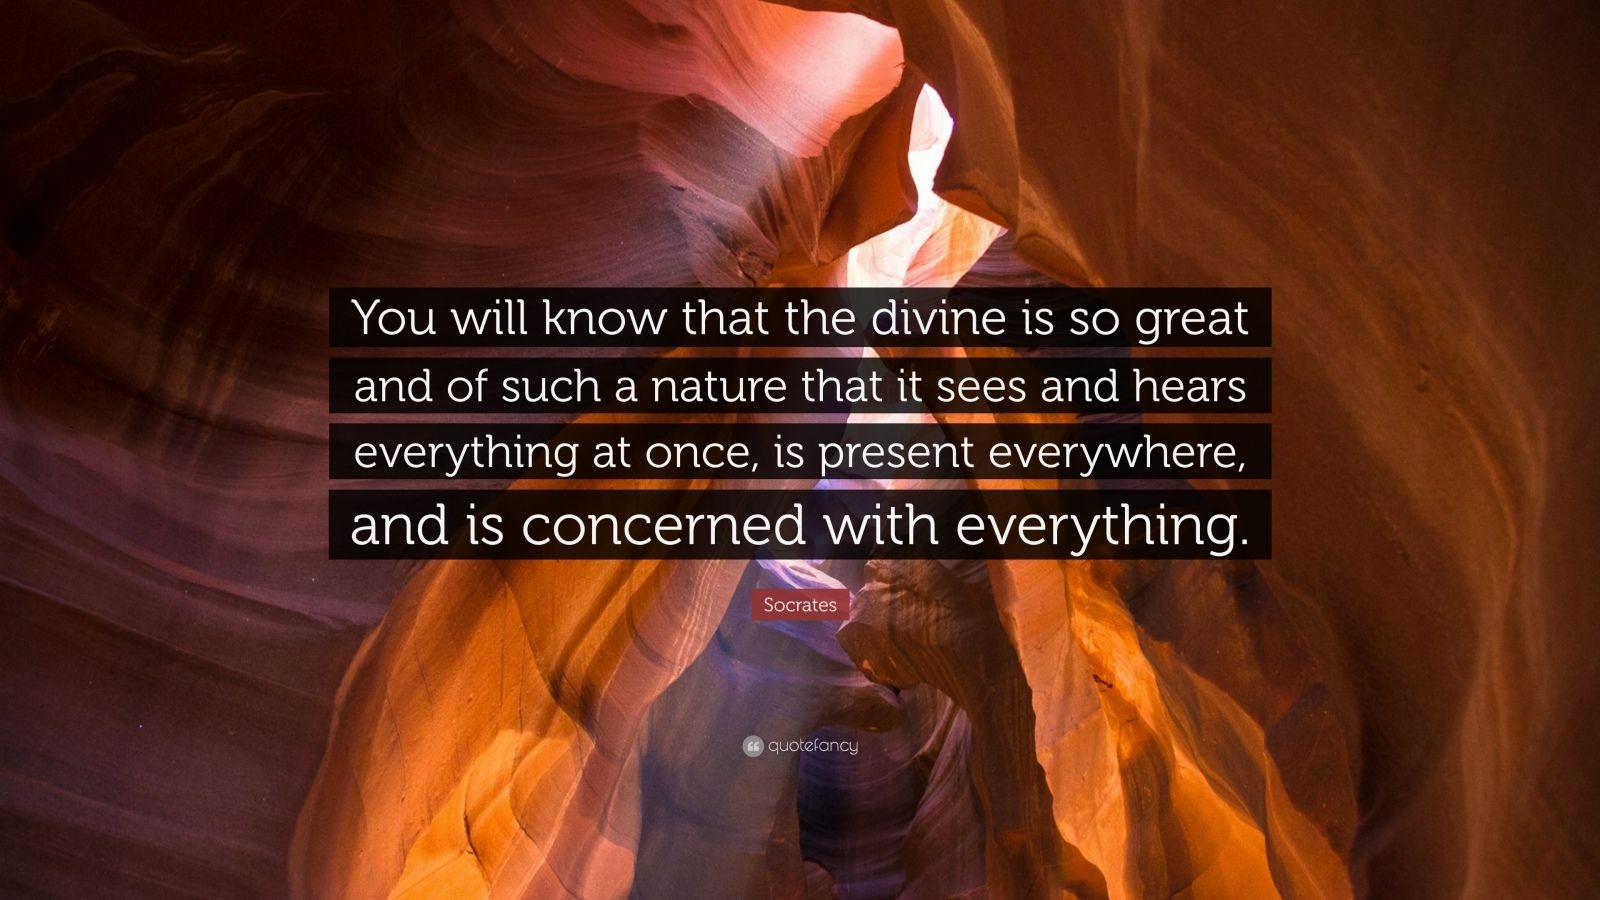 """Socrates Quote: """"You will know that the divine is so great and of such a nature that it sees and hears everything at once, is present everywhere, and is concerned with everything."""""""